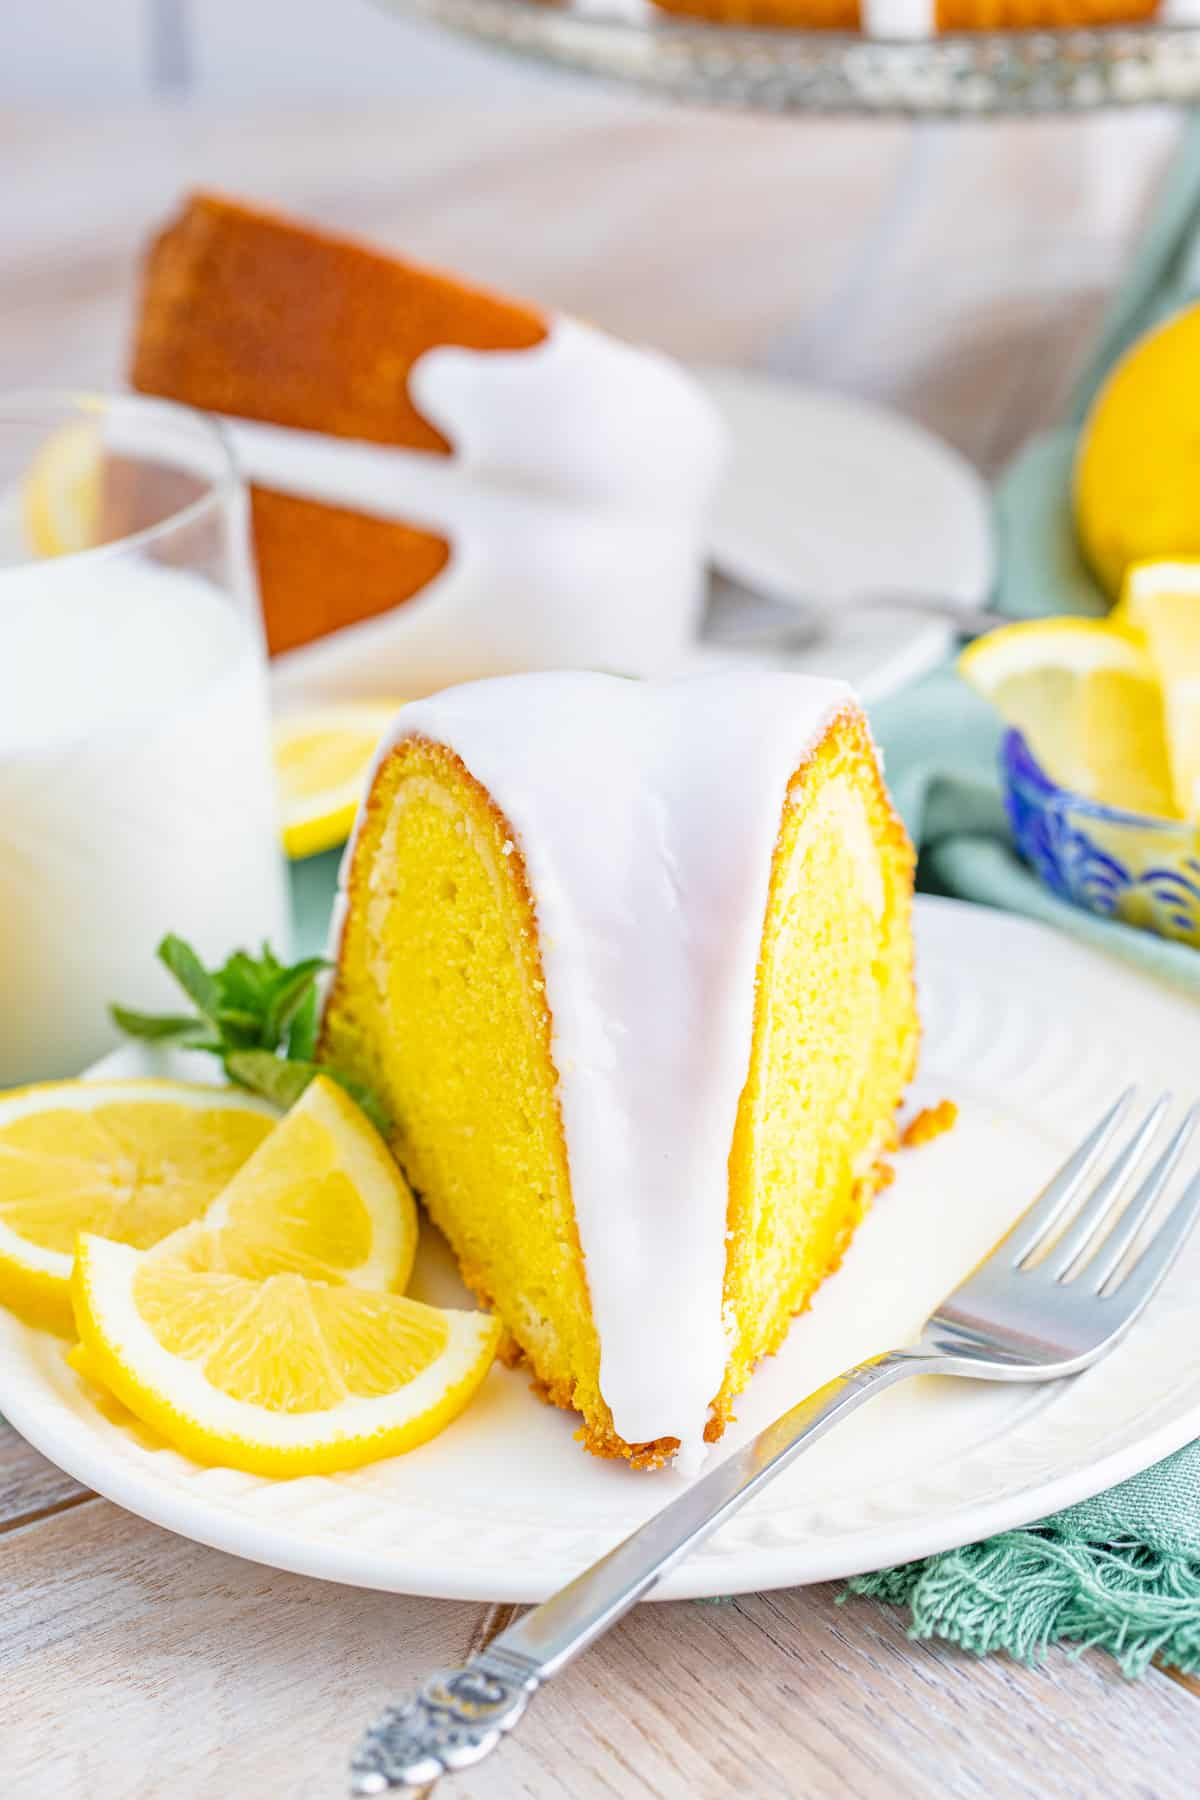 Front facing slice of cake on white plate with fork and lemons